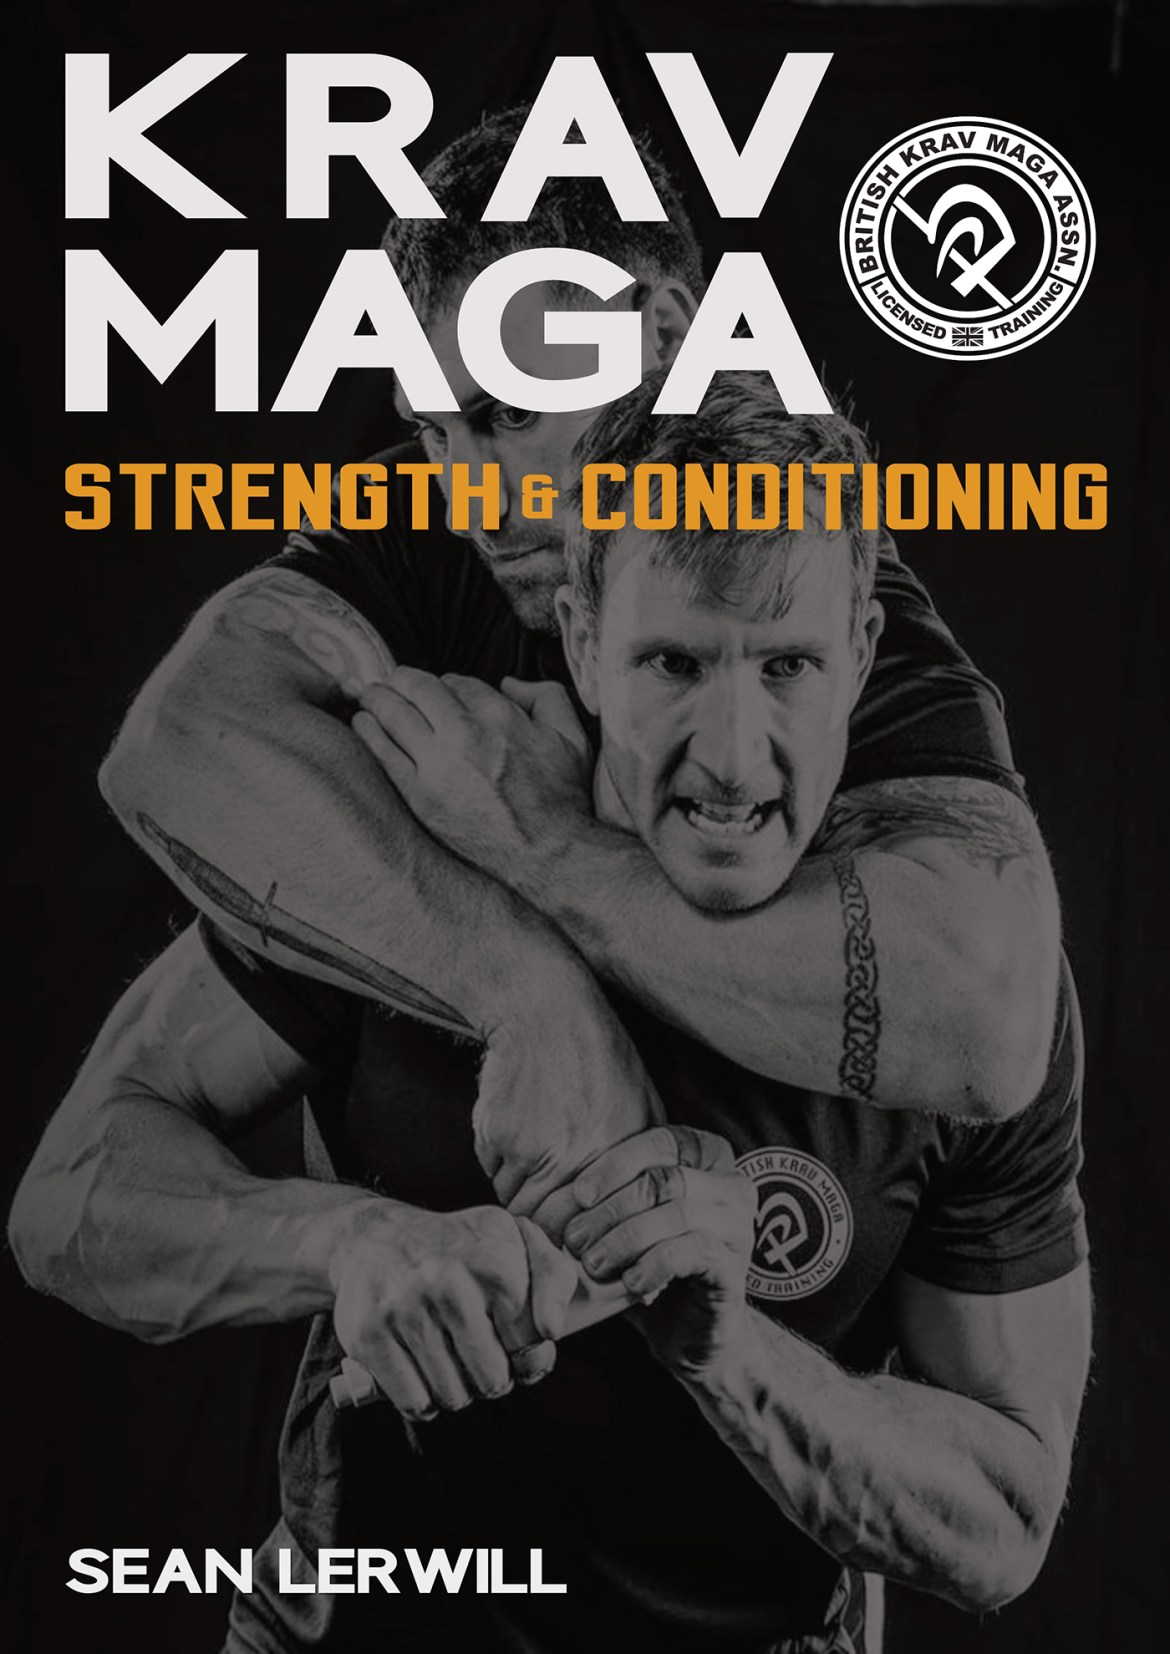 Strength and Conditioning for Krav Maga